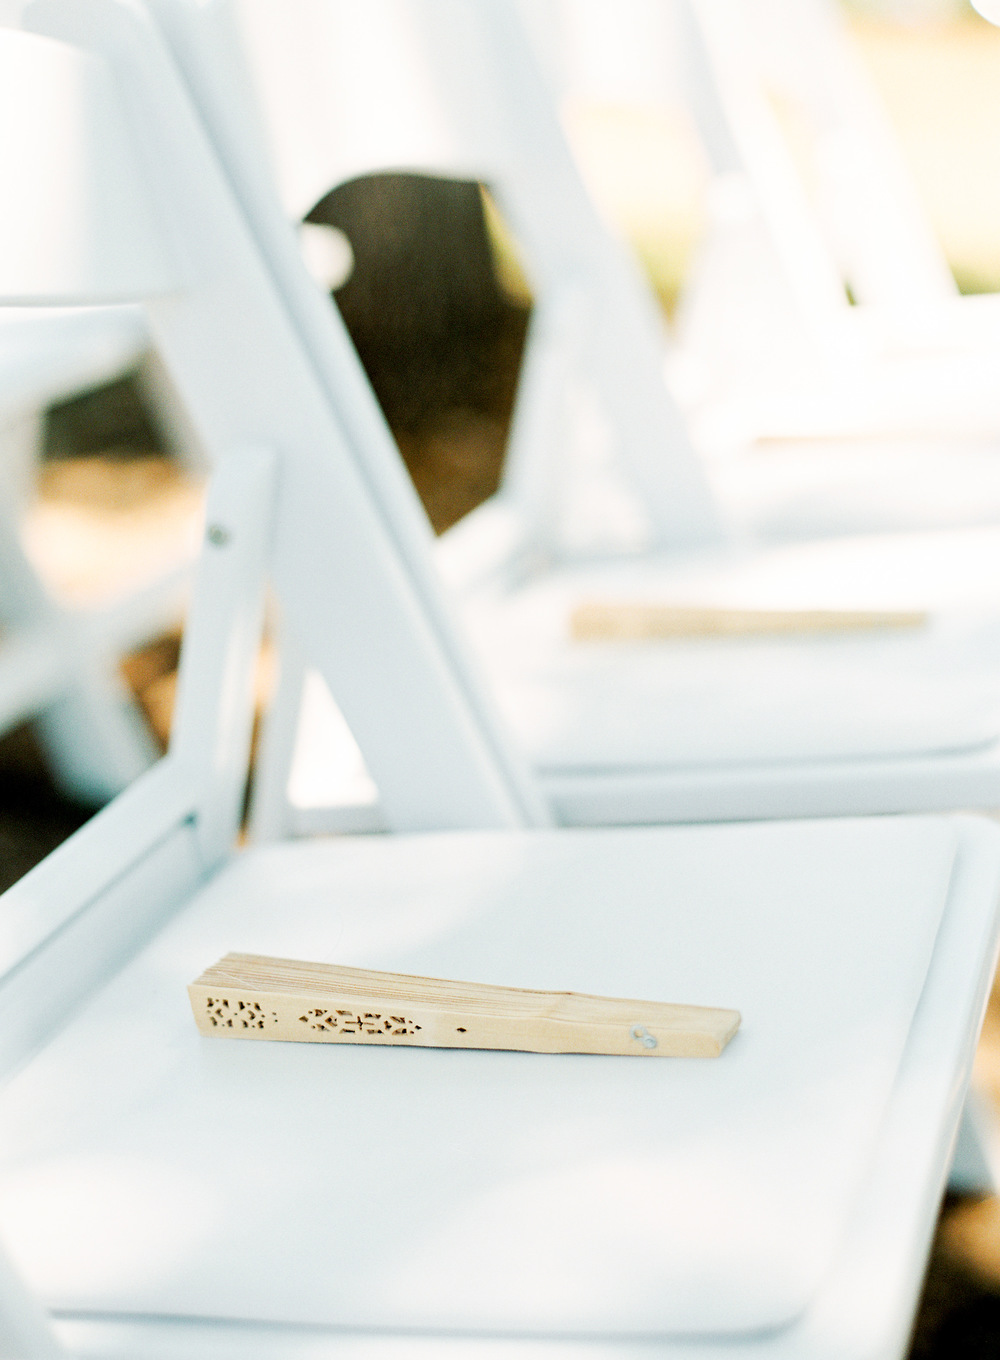 southern-inspired-wedding-at-ravenswood-historic-site-007-4.jpg